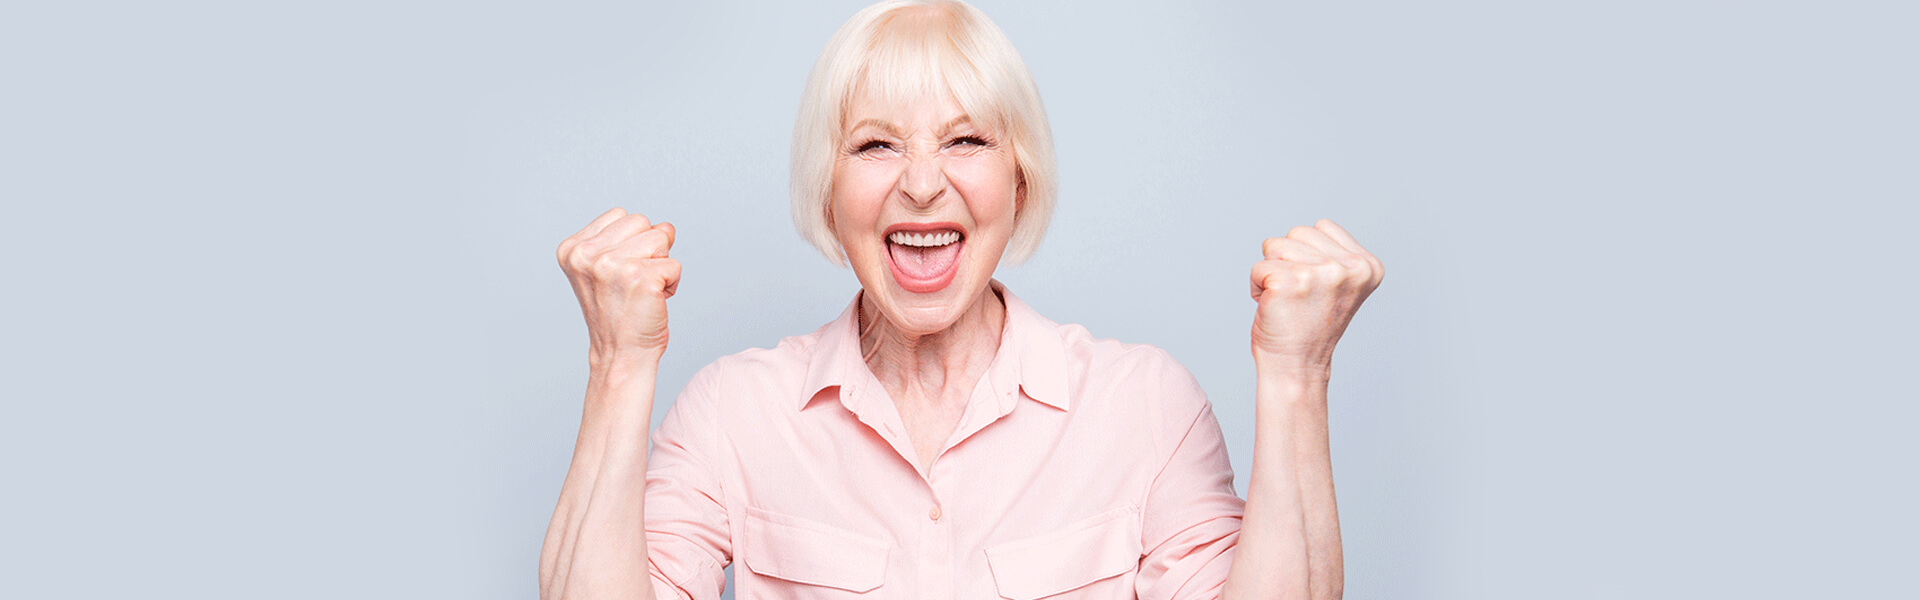 Are Dental Implants an Ideal Solution?